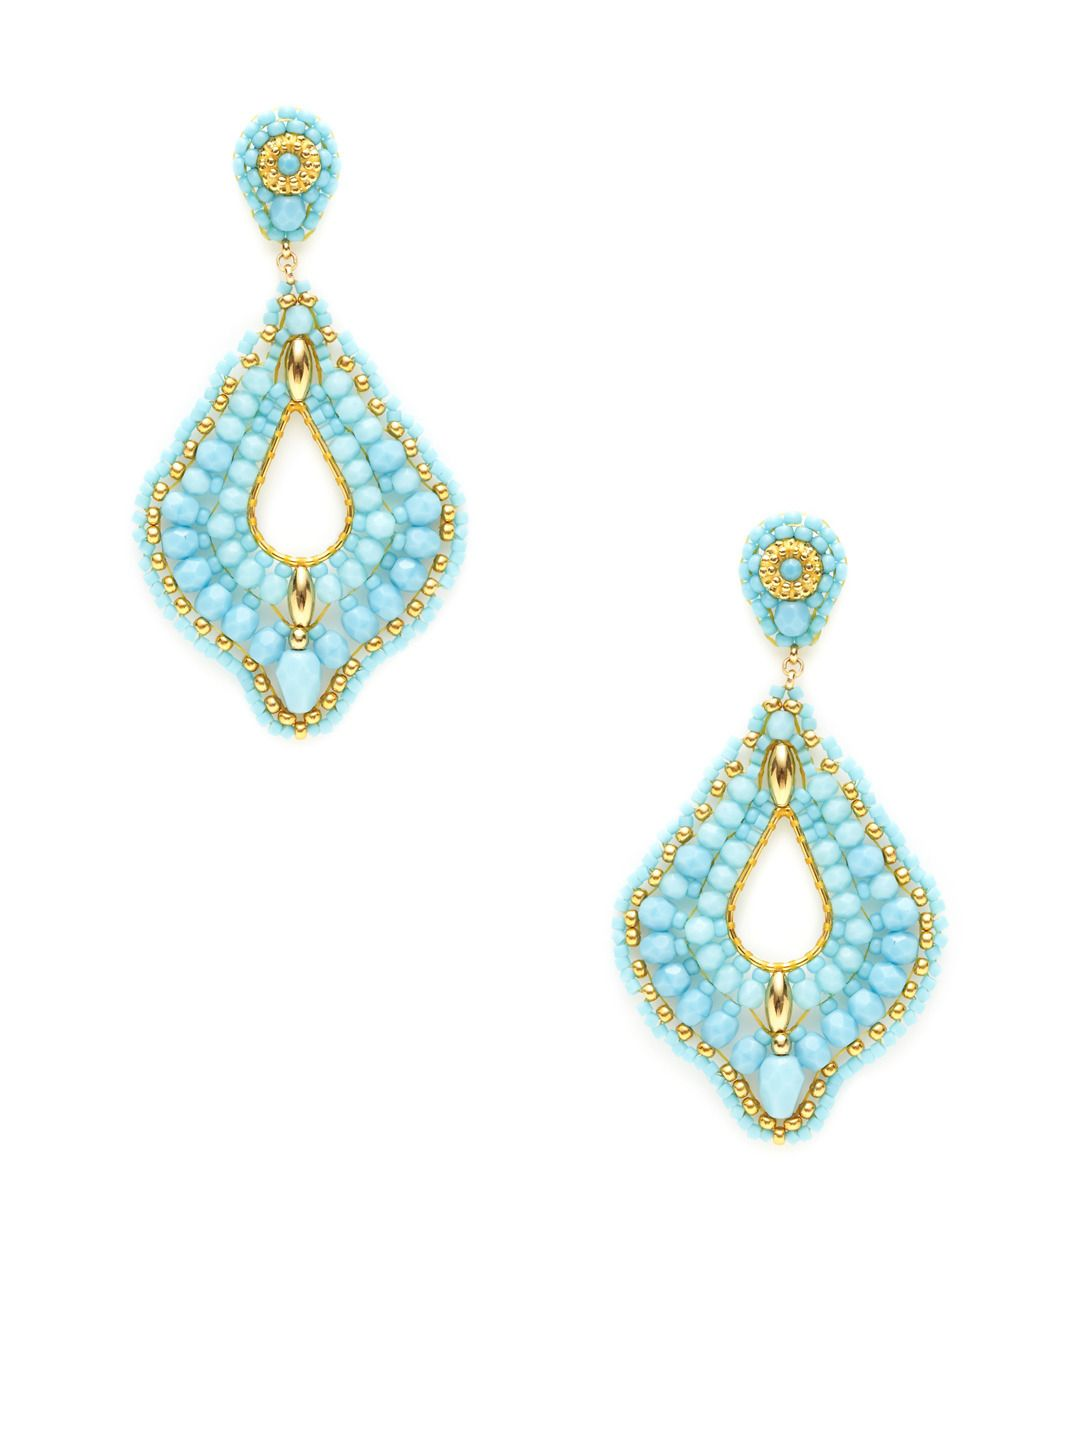 """$335      149  Turquoise Bead Open Teardrop Earrings by Miguel Ases  14K yellow gold fill and 18K yellow gold-plated brass open teardrop-shaped earrings with turquoise, Swarovki crystal, and Miyuki bead details  Post back closure Measurements: 2¾"""" long, 1½"""" at widest point"""